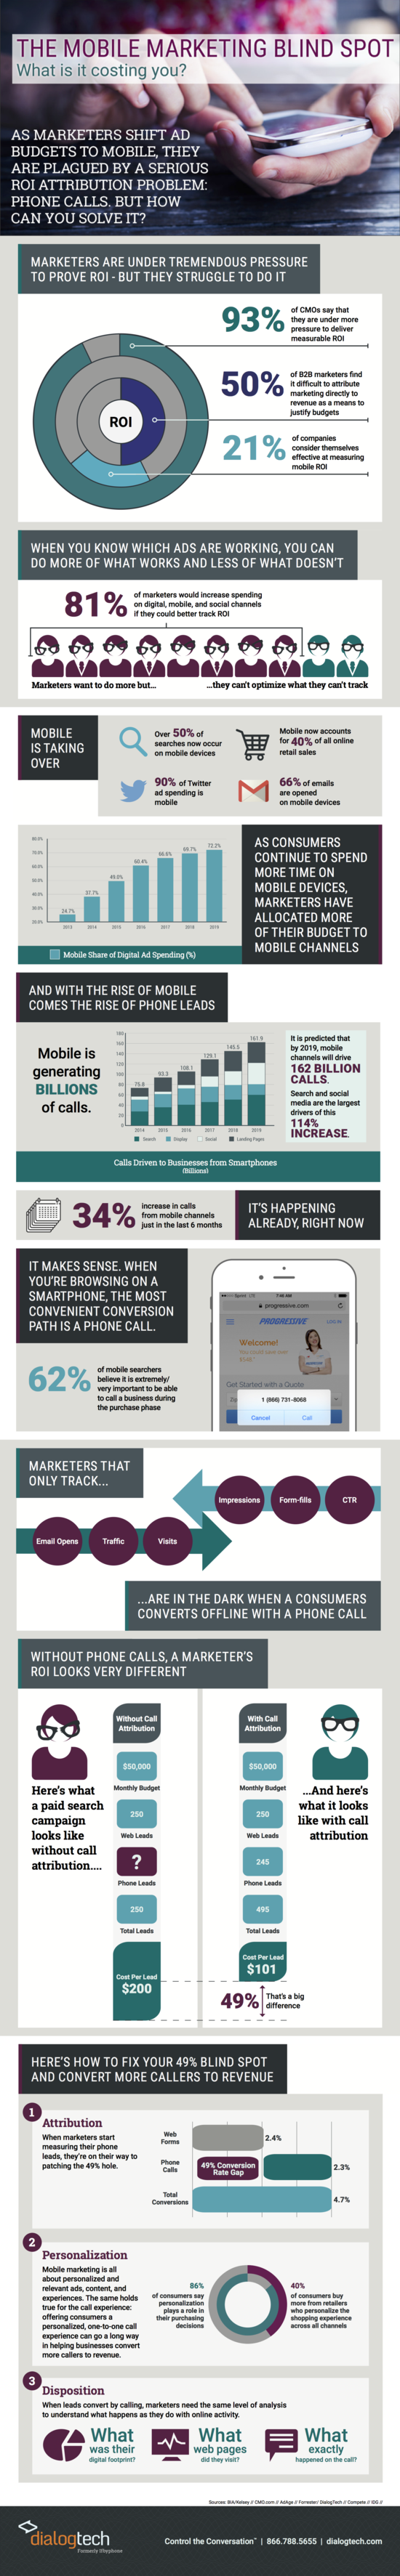 The Mobile Marketing Blind Spot -- What is it costing you